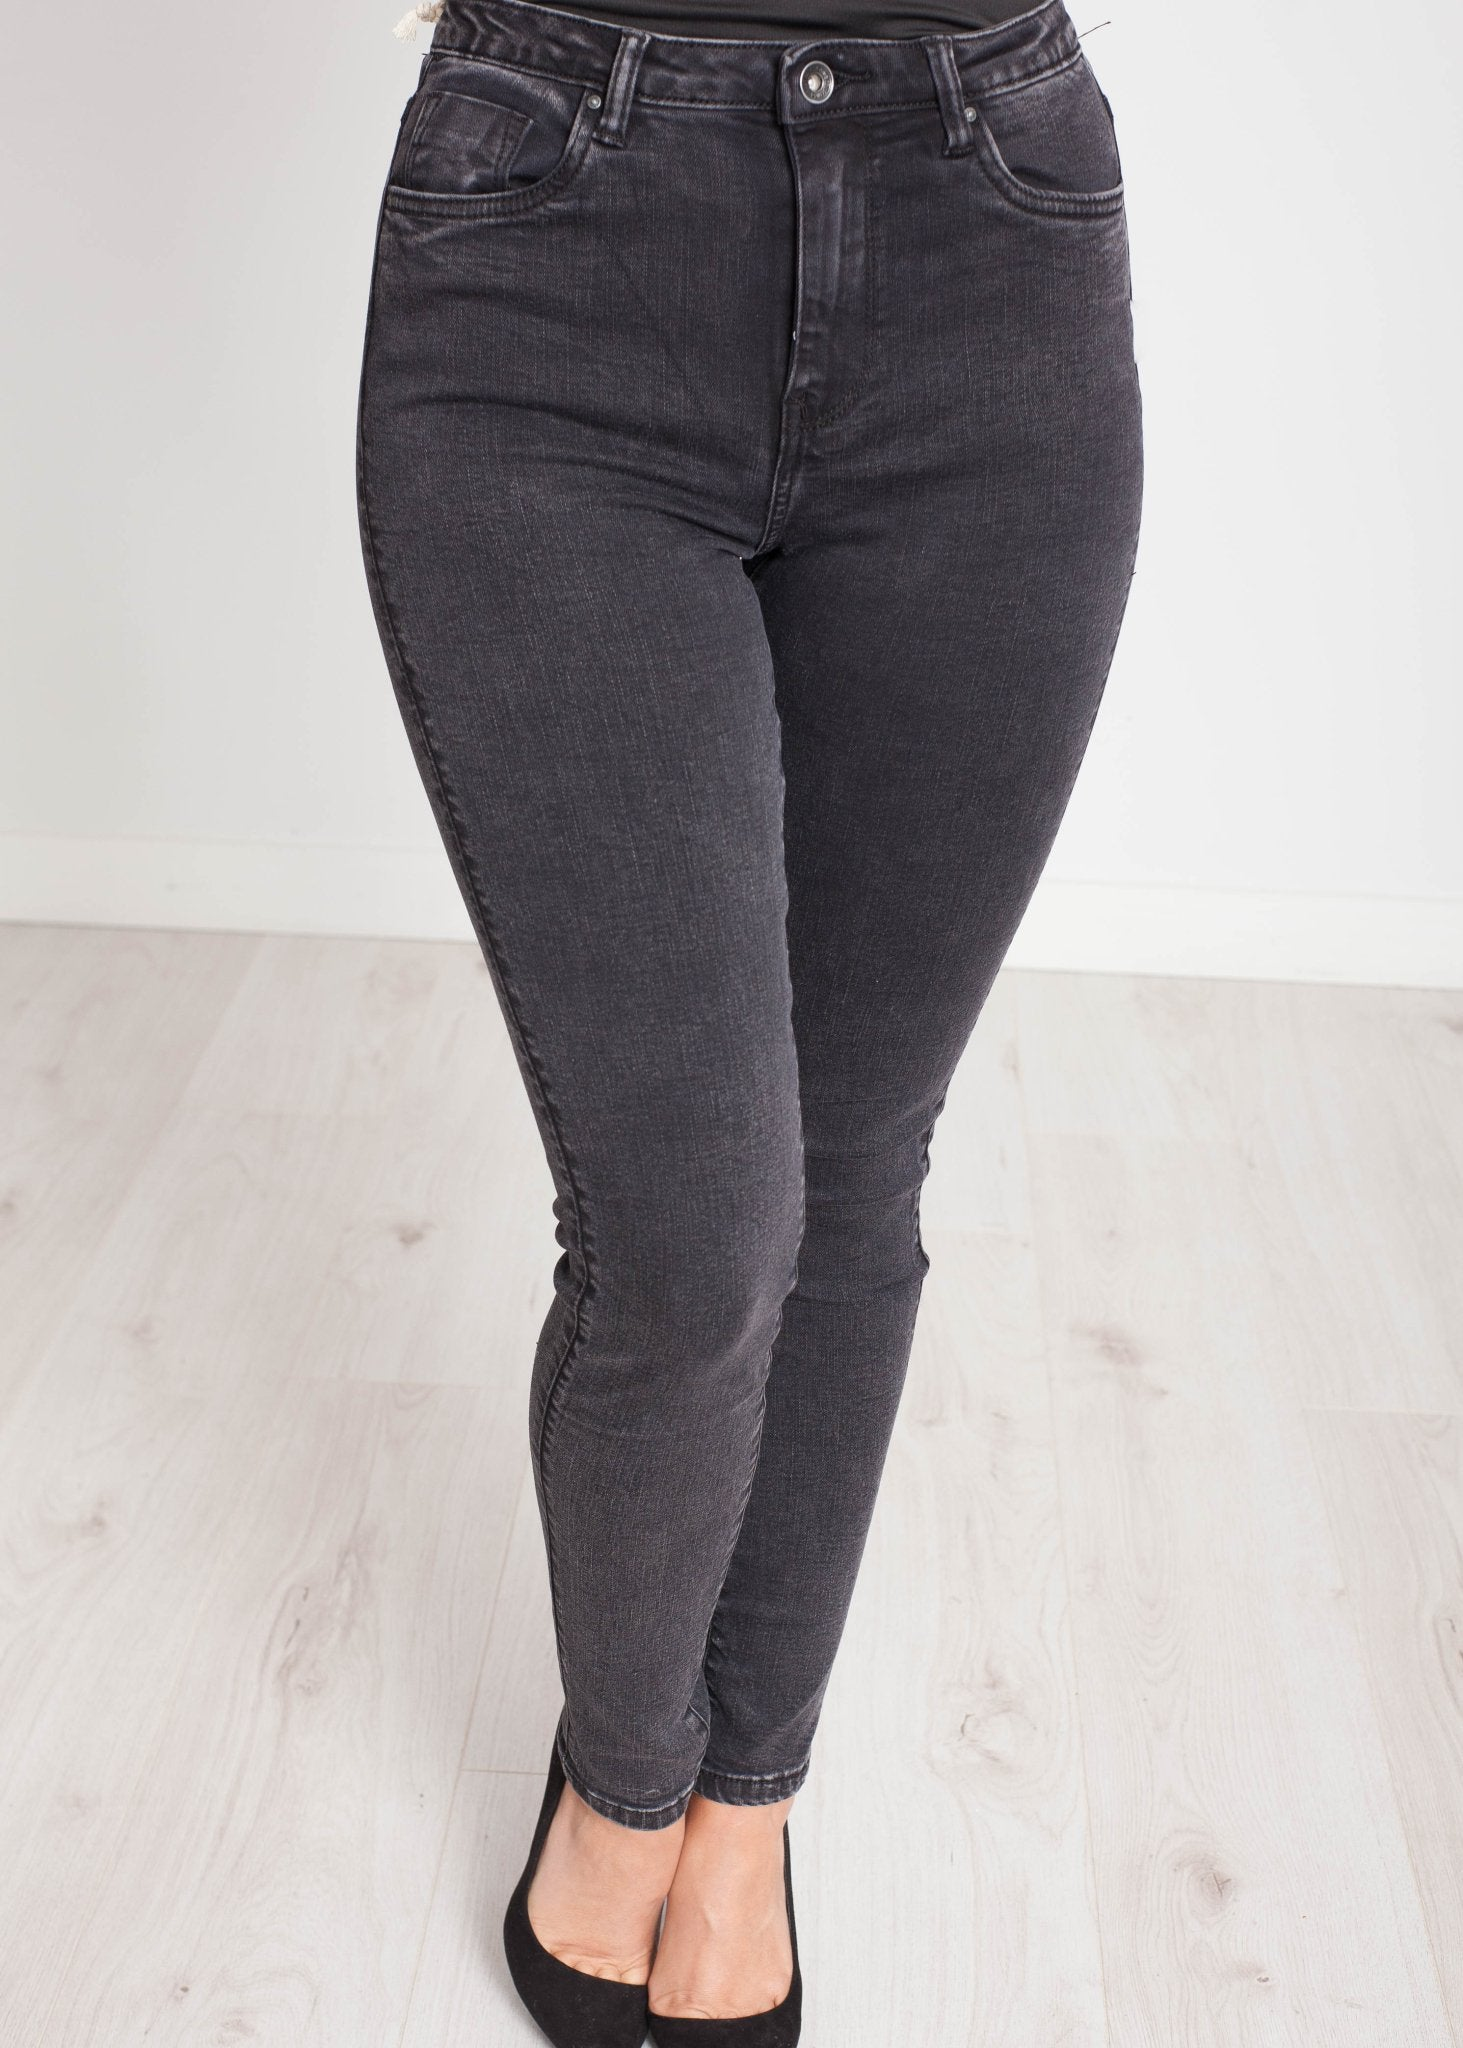 Charlotte High Waist Jean In Black Wash - The Walk in Wardrobe